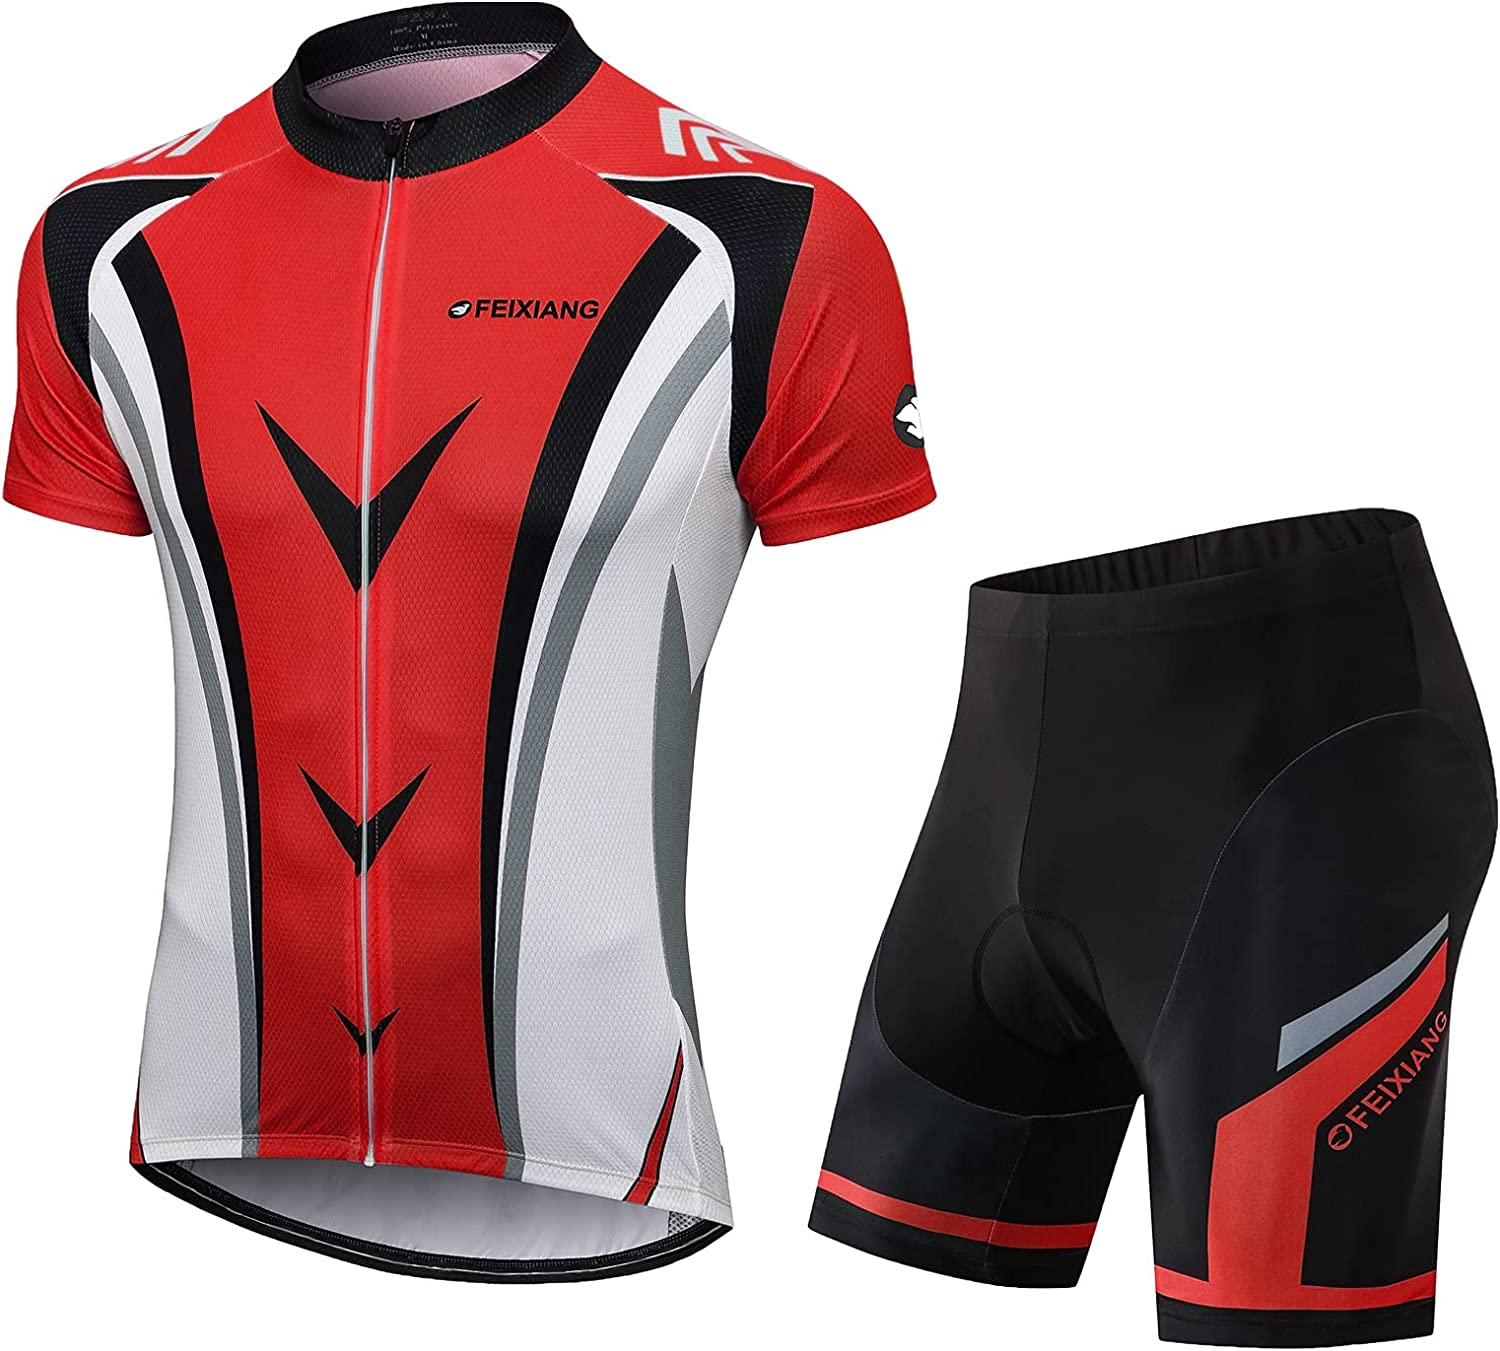 Dealing full price reduction FEIXIANG Mens Cycling Jersey Set Sleeve Short Free shipping on posting reviews Bicycle Kit Bike